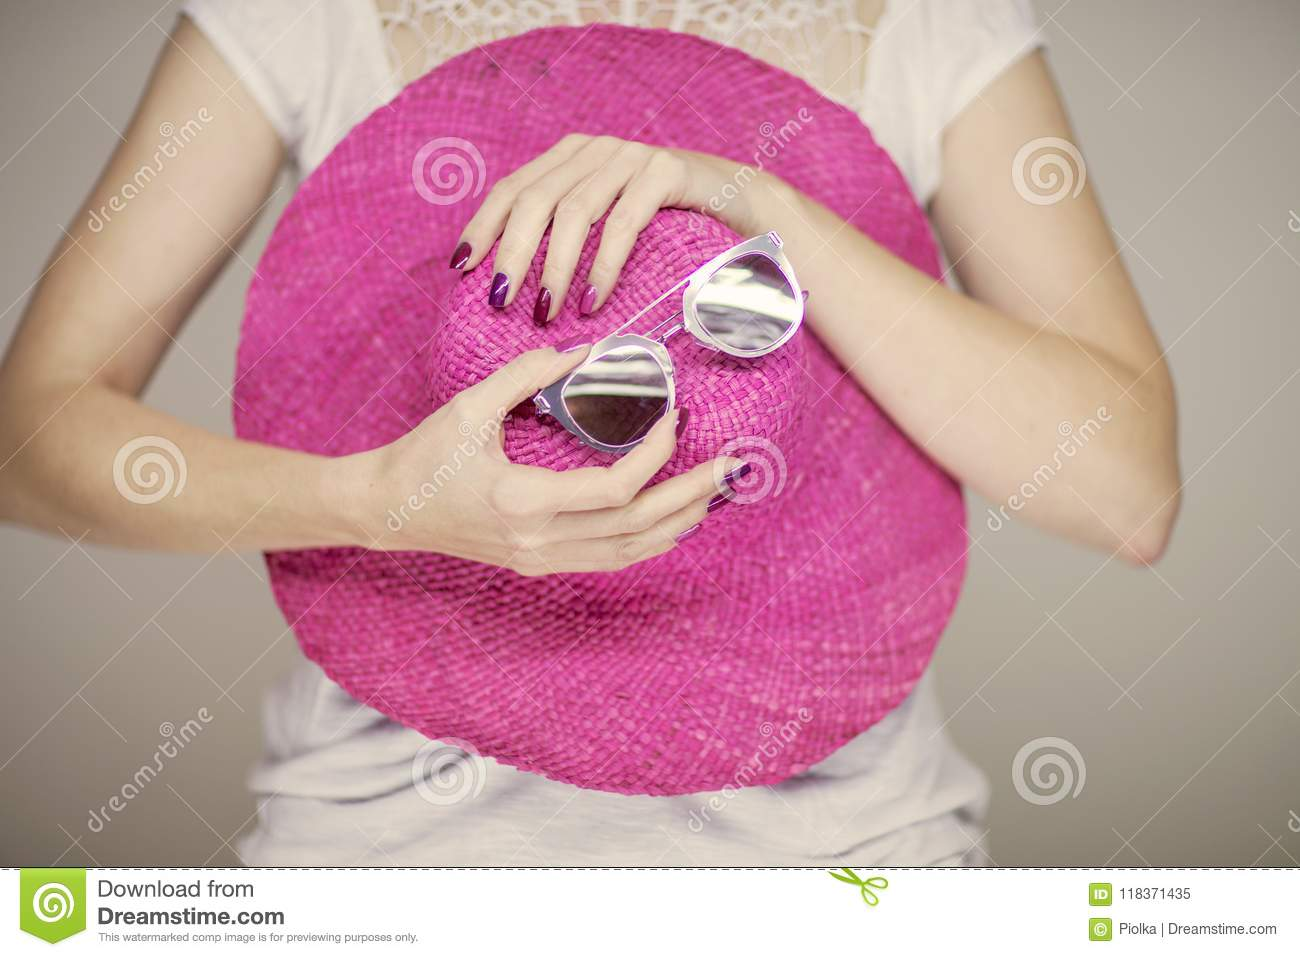 Beautiful woman hands with perfect pink nail polish holding sunhat and sunglasses, happy beach mood